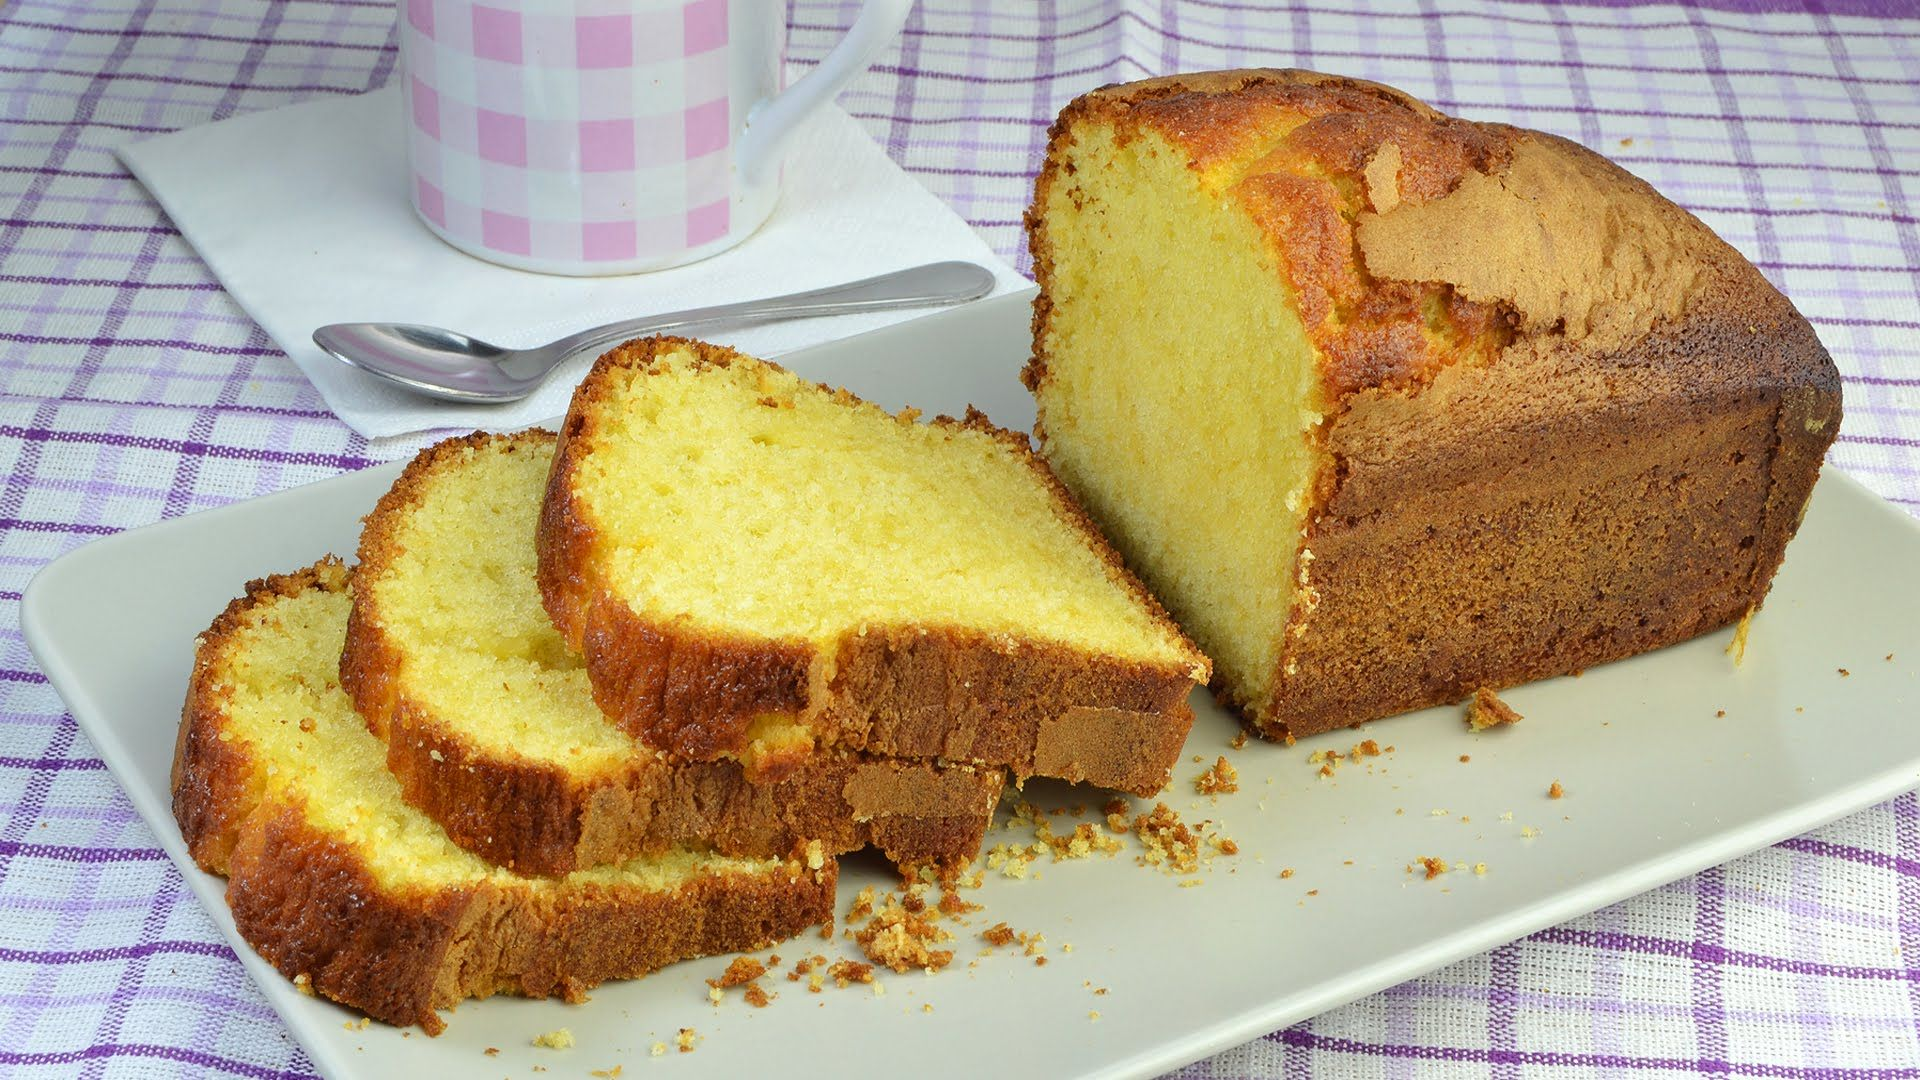 Learn how to make a delicious lemon yogurt cake at home. This fluffy sponge cake…